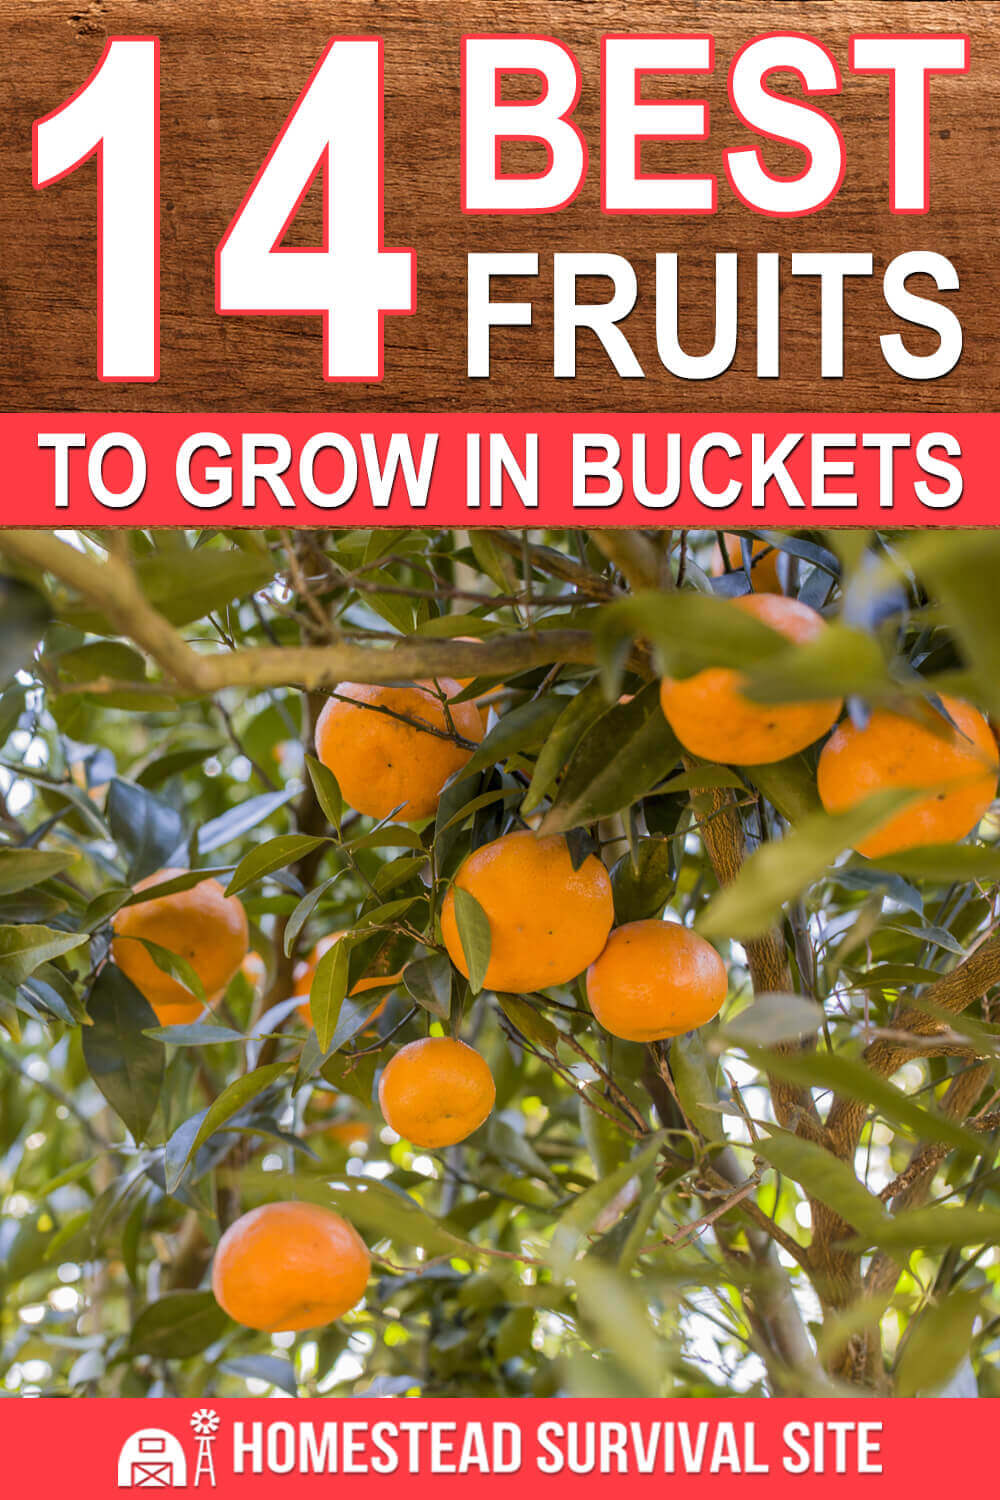 14 Best Fruits to Grow in Buckets